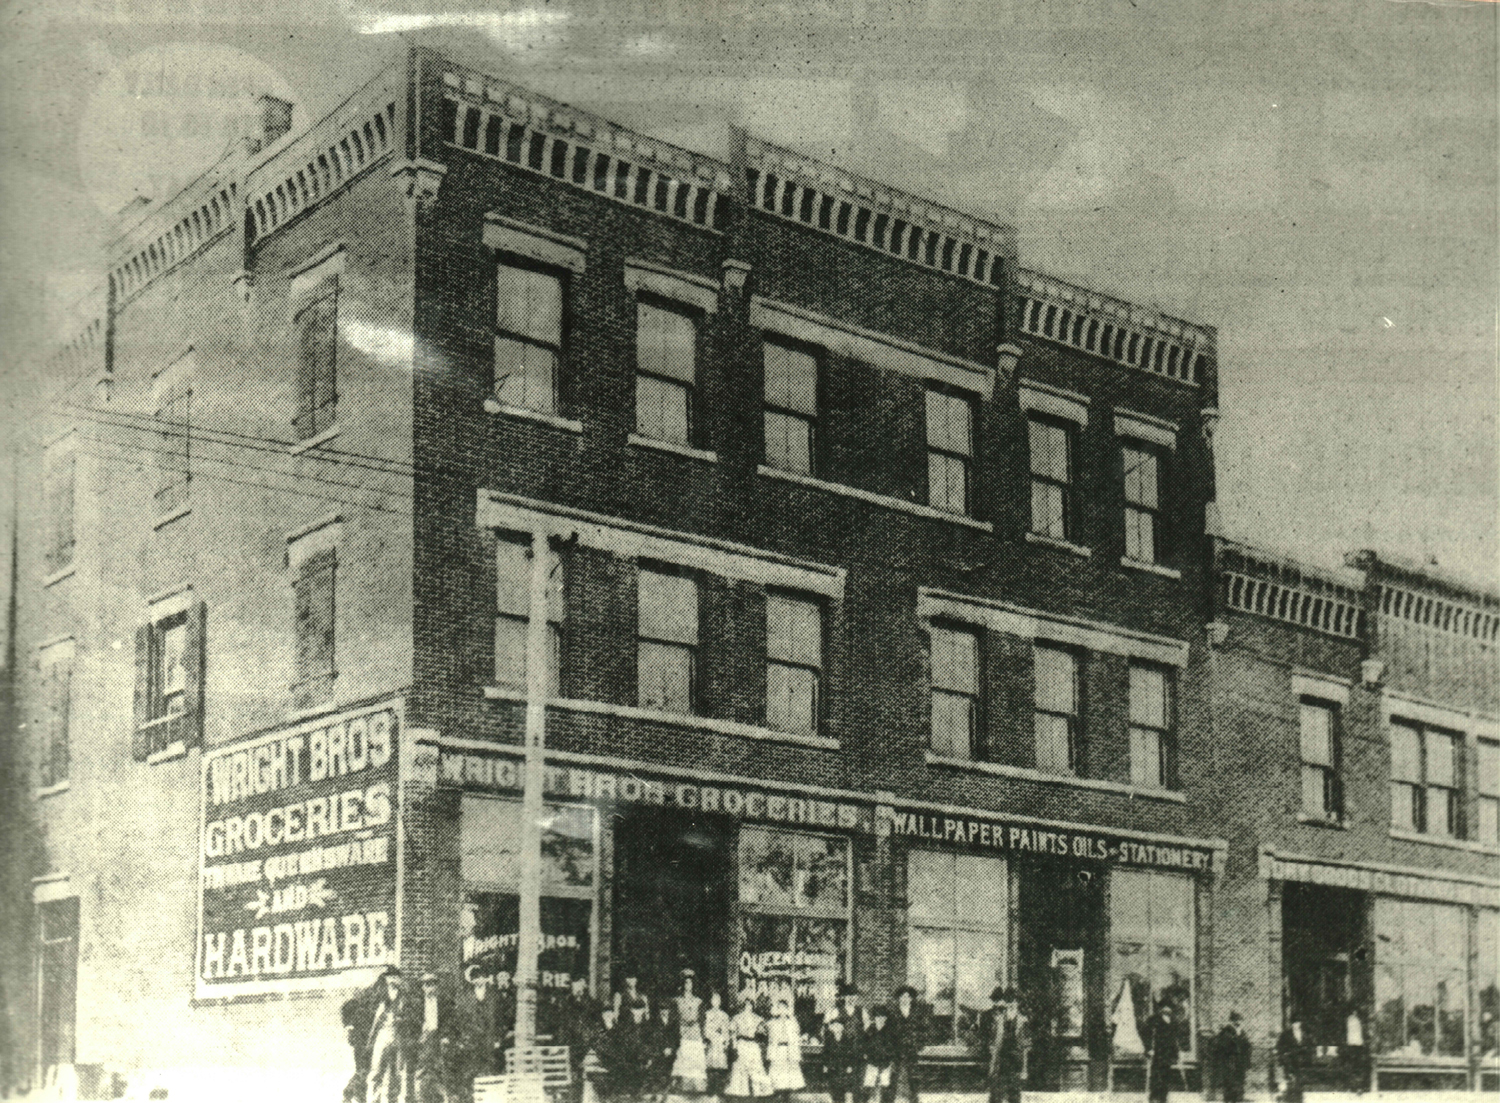 The Wright Brothers Store was considered one of the largest and most popular stores in the region during the first few decades of the twentieth century.